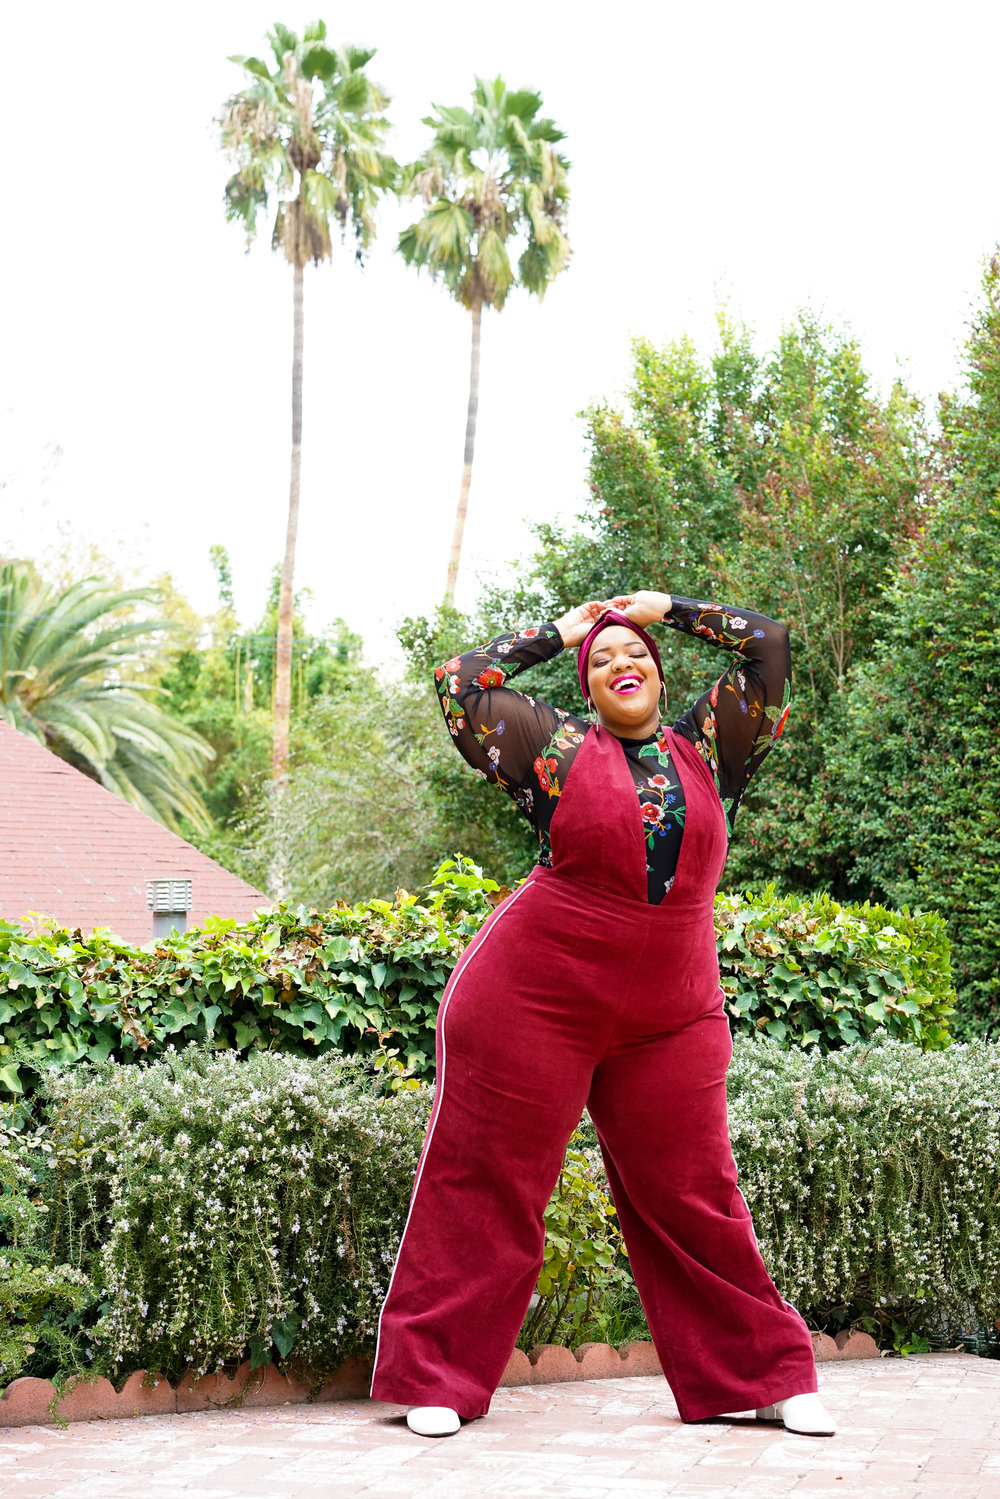 Leah-Vernon-Plus-Size-Body-Positive-Muslim-Girl-Model-Detroit-London-Blogger-Instagram-1.jpg